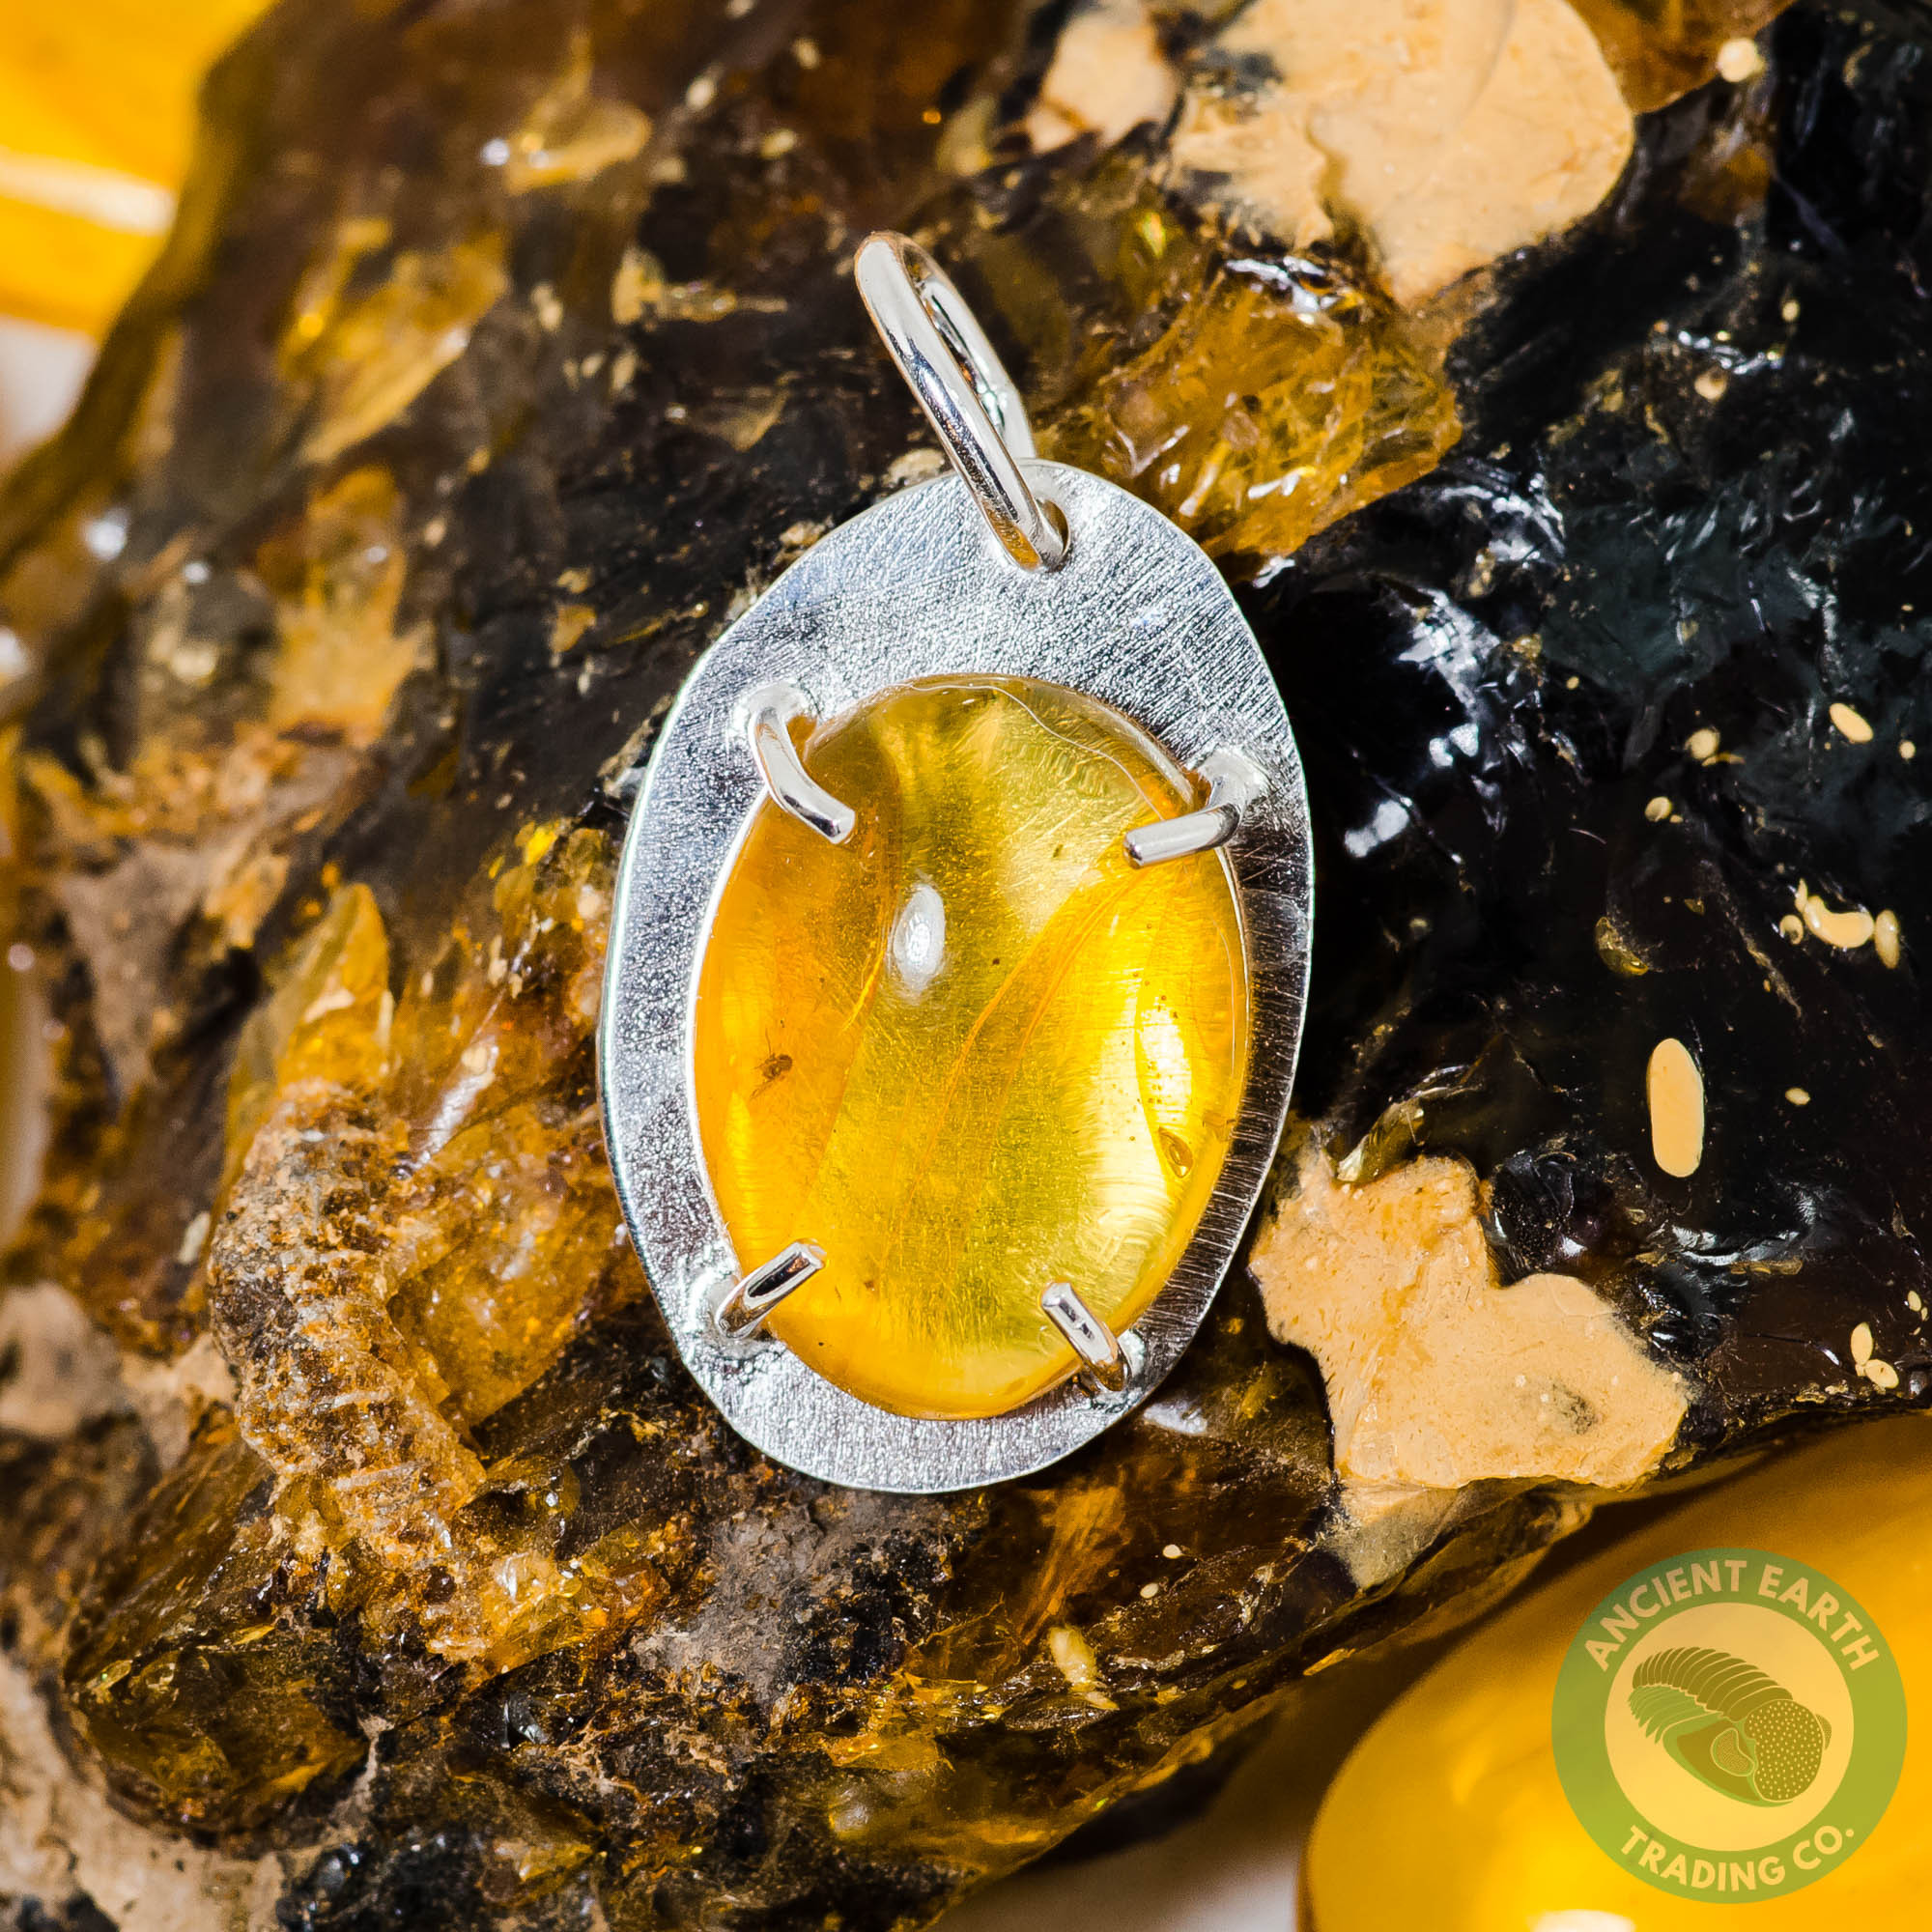 25mm Dominican Amber Fossil Pendant Beetle Insect with a Methane Bubble set in Sterling Silver